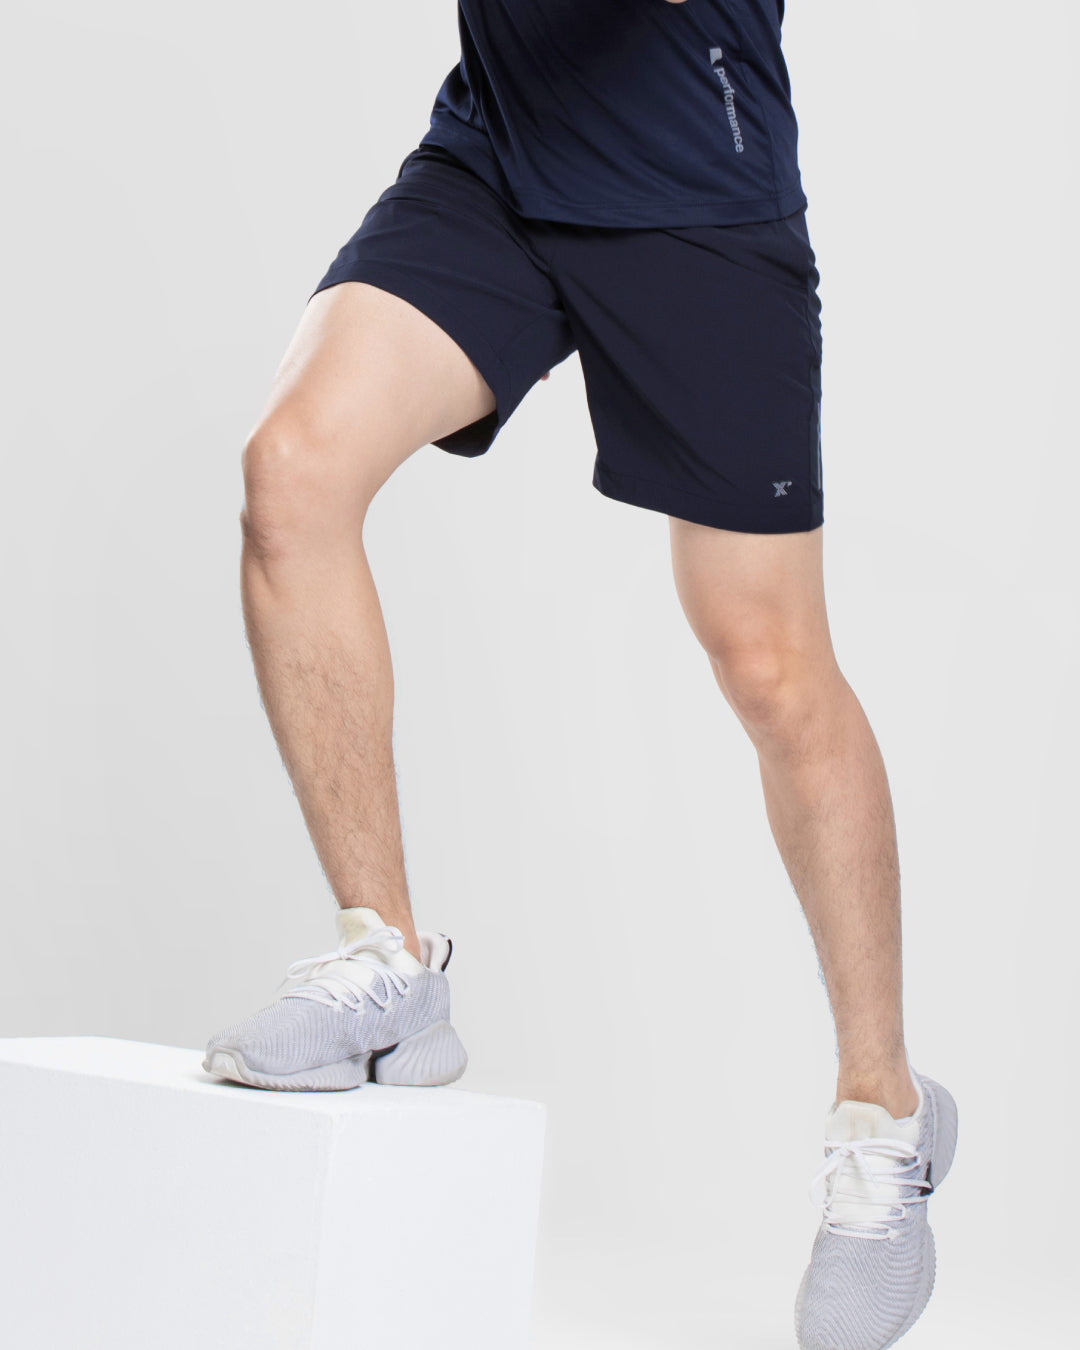 Cooldry Men's Training Shorts